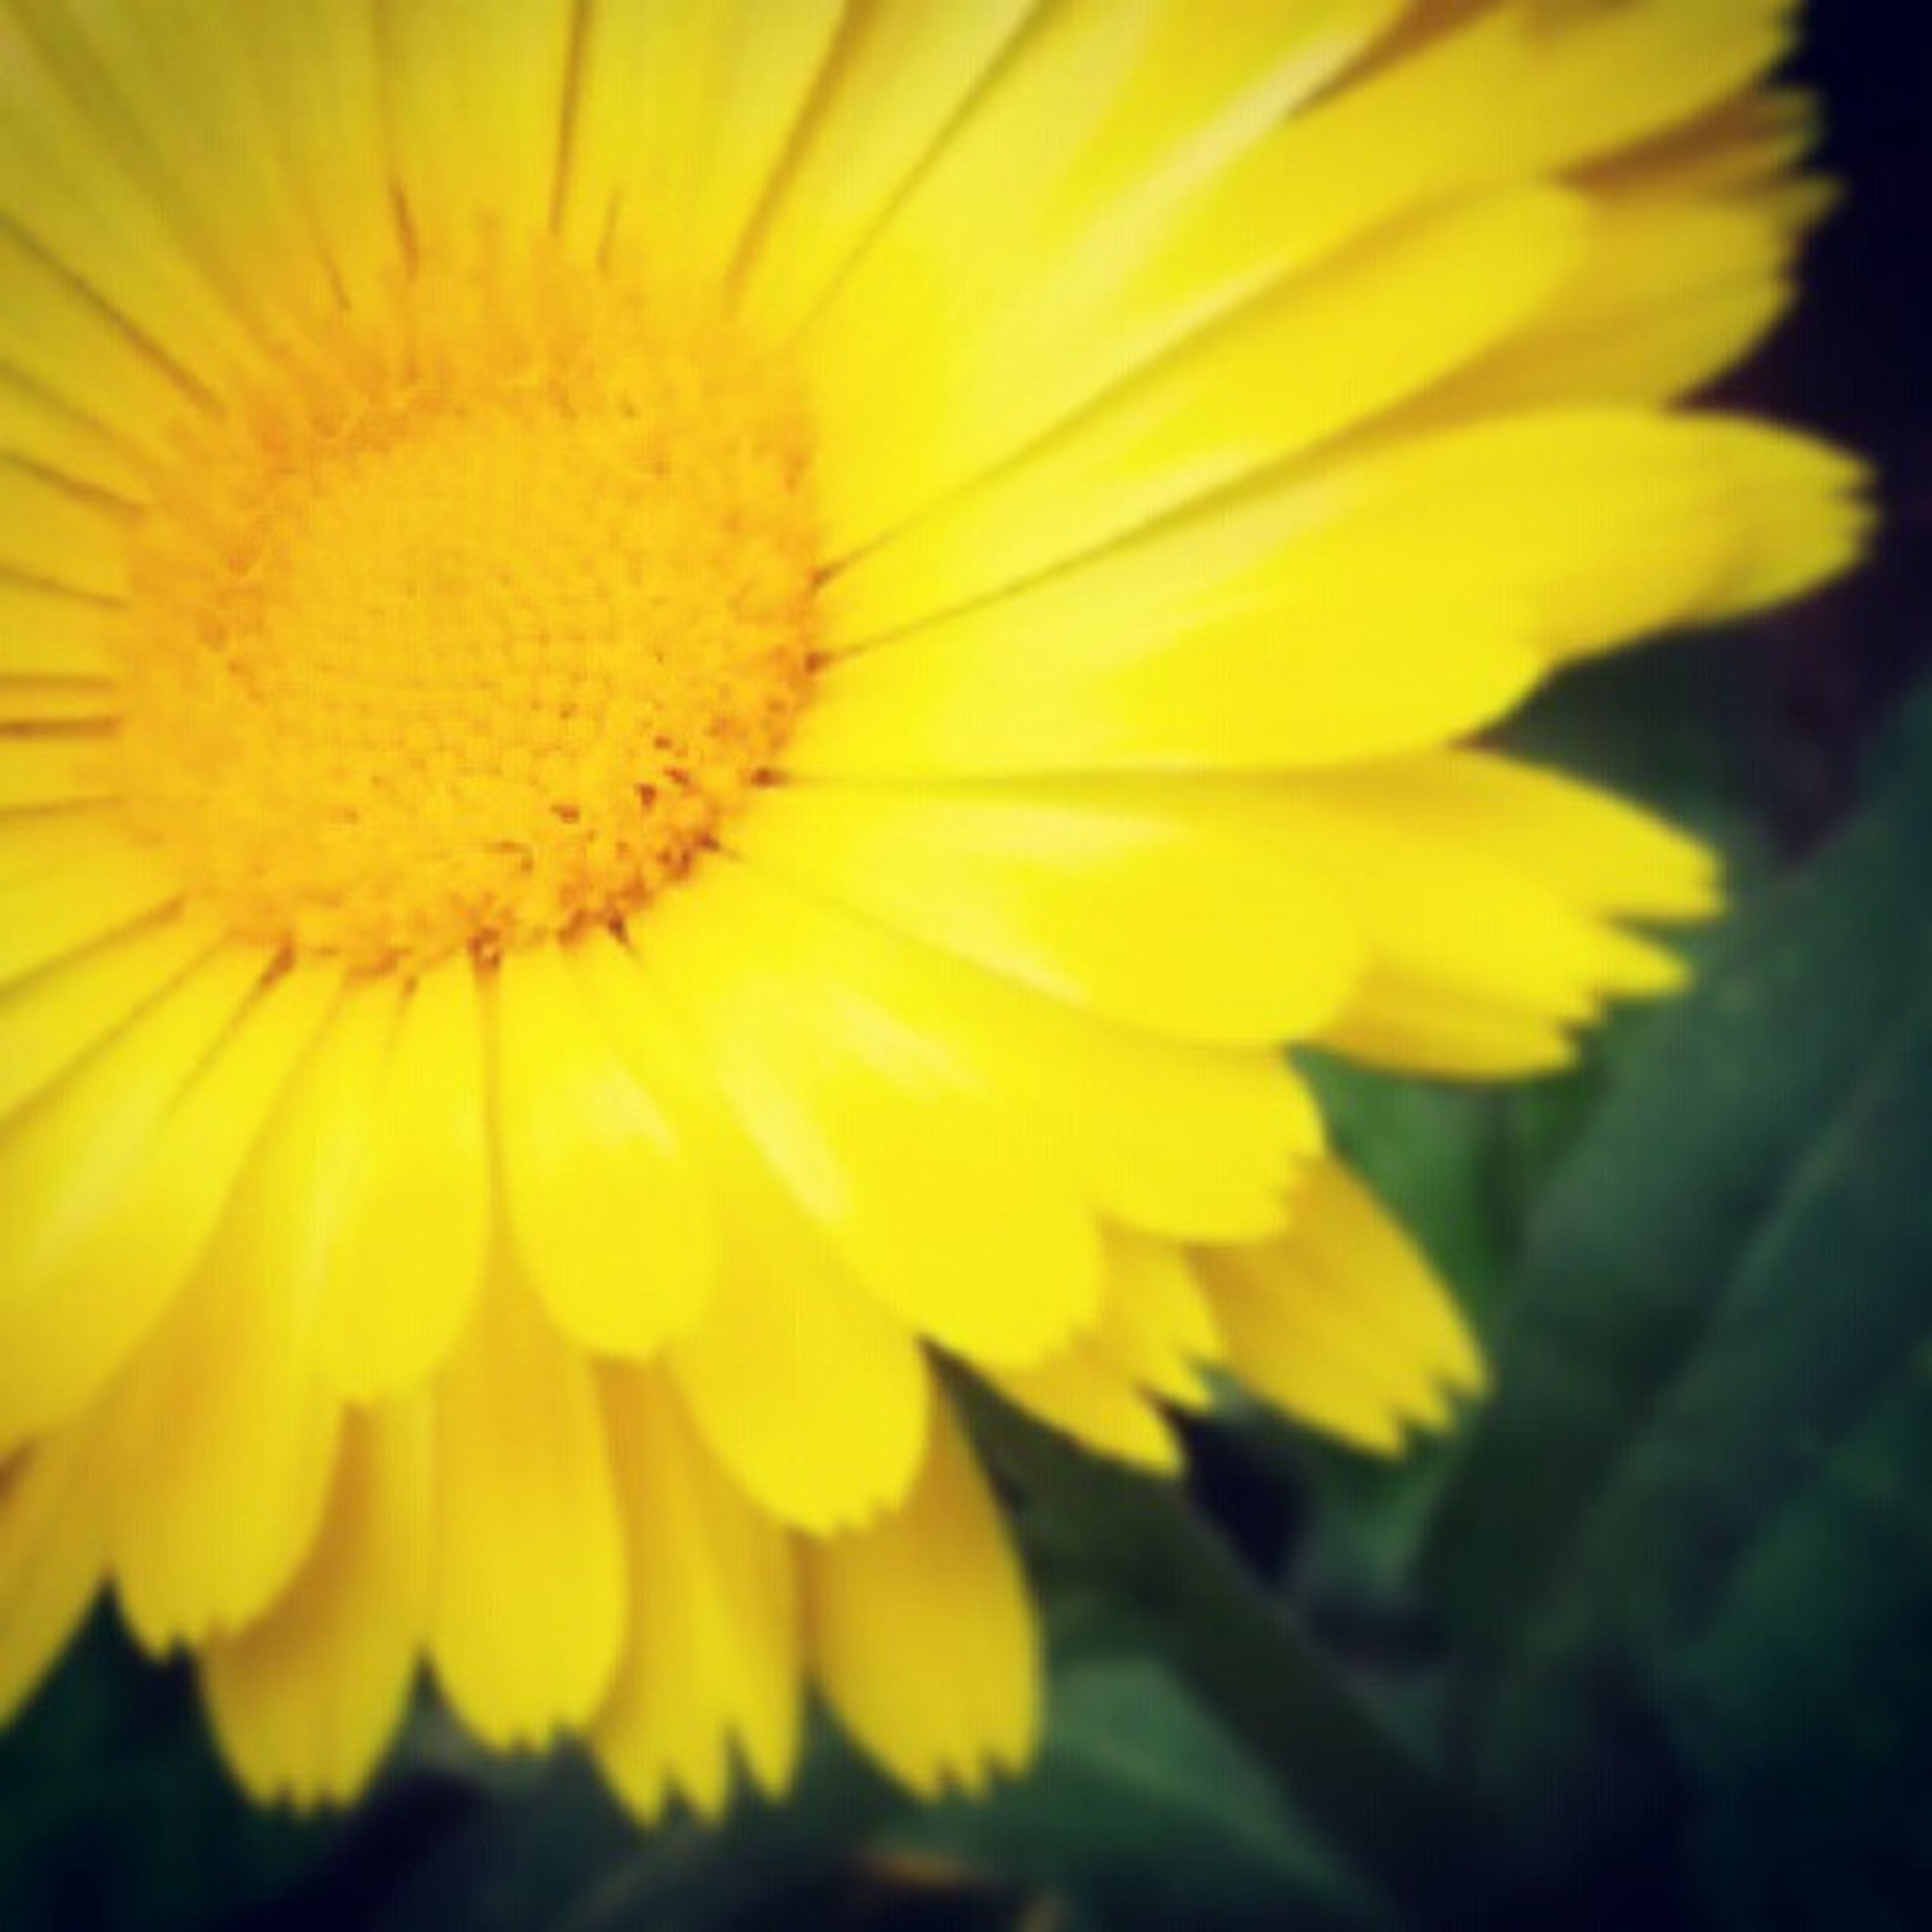 flower, petal, yellow, freshness, flower head, fragility, beauty in nature, close-up, growth, pollen, blooming, nature, single flower, focus on foreground, in bloom, plant, selective focus, outdoors, no people, blossom